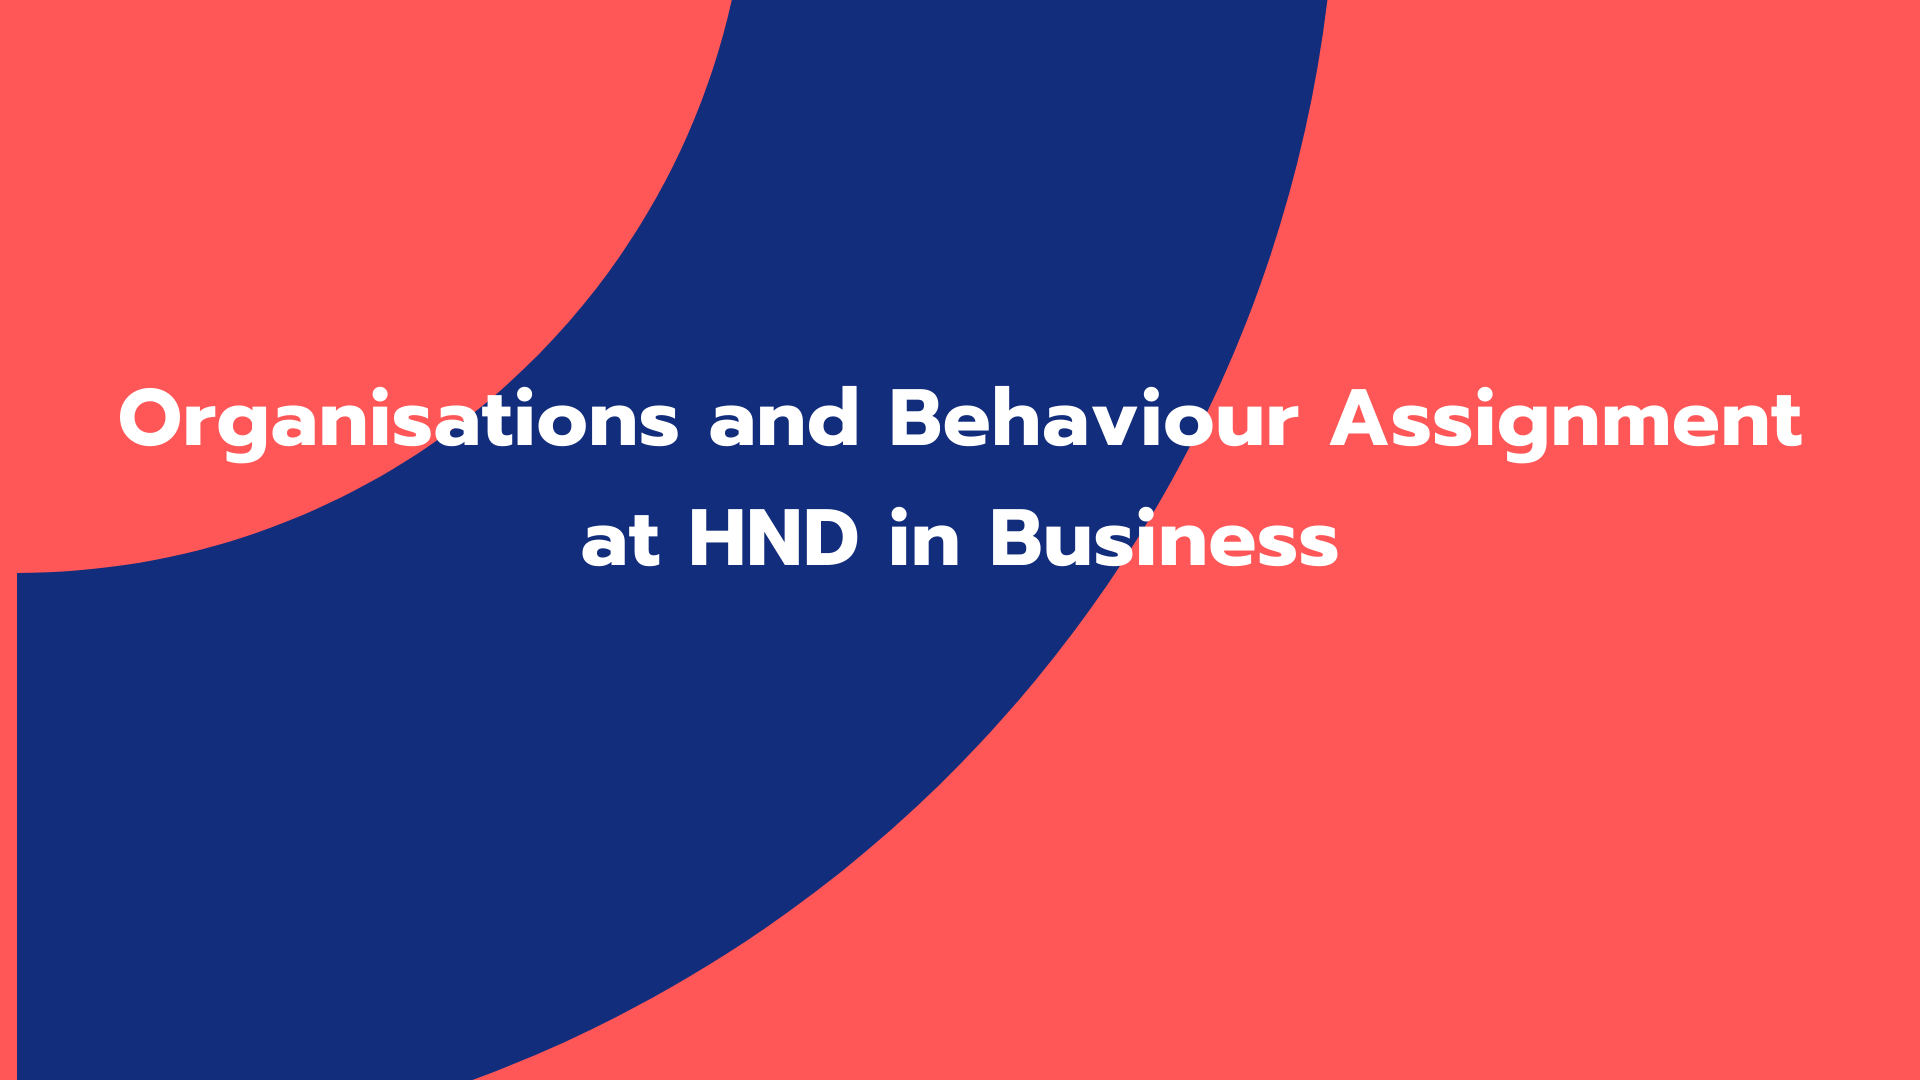 Organisations and Behaviour Assignment at HND in Business